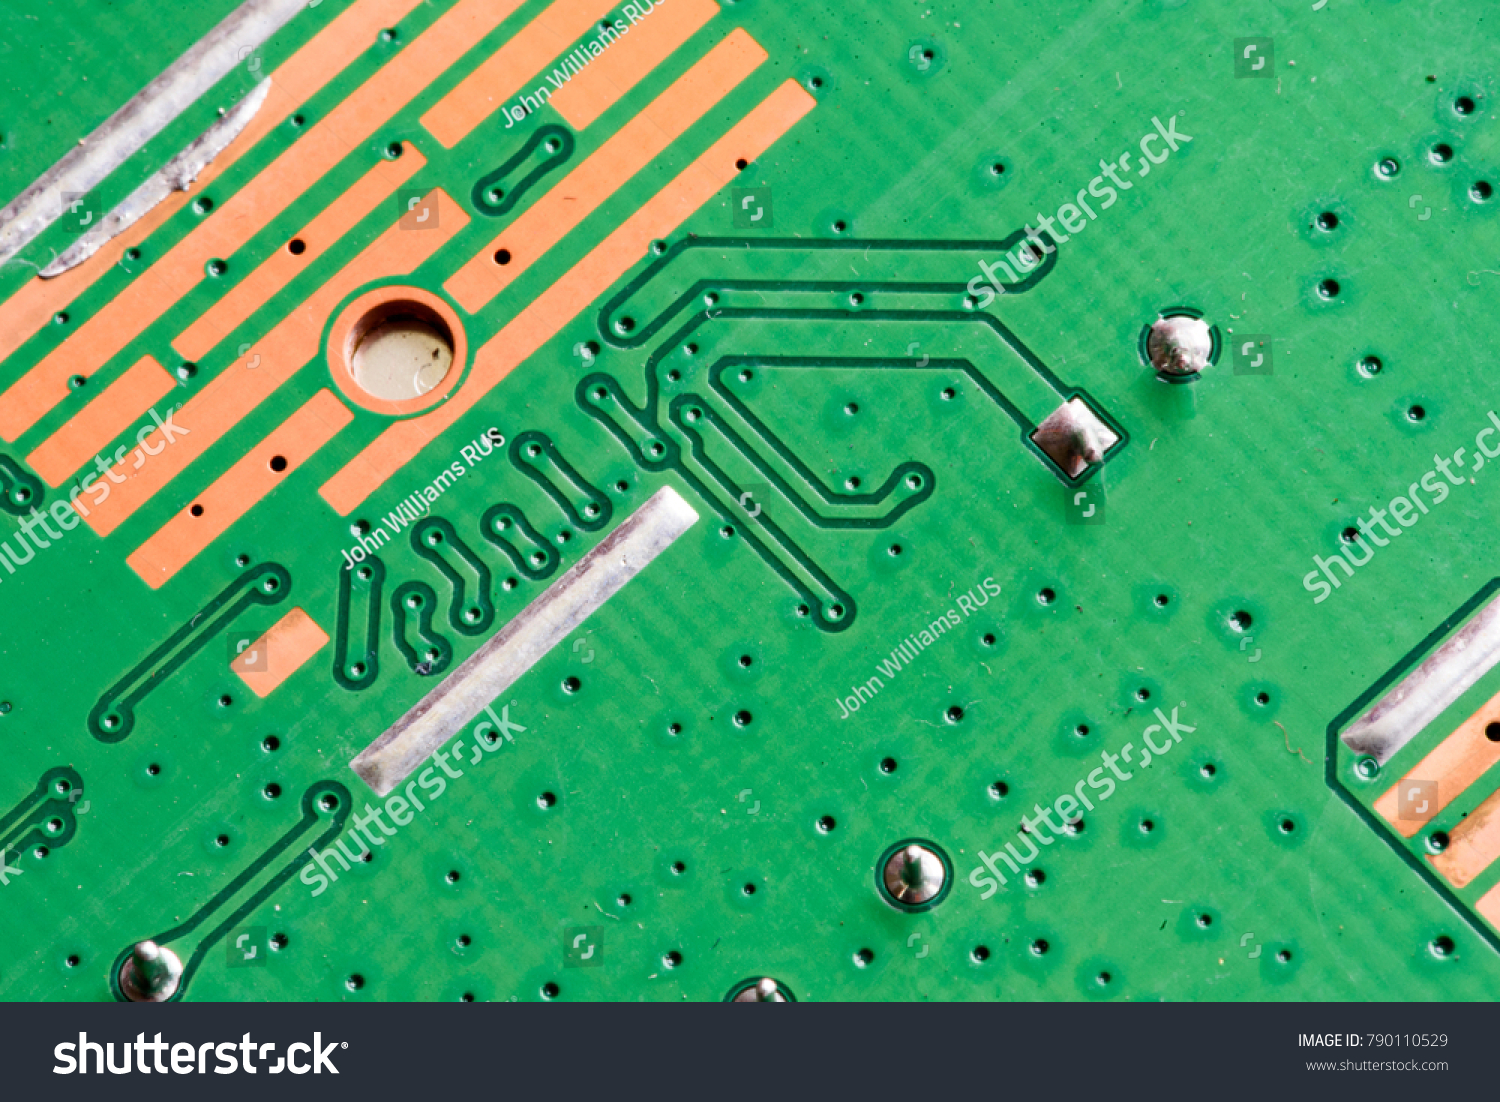 Electronic Pcb Printed Circuit Board Macro Stock Photo Edit Now Stockfoto Used In Industrial Close Up With Transistors Circuitry And Electric Hardware